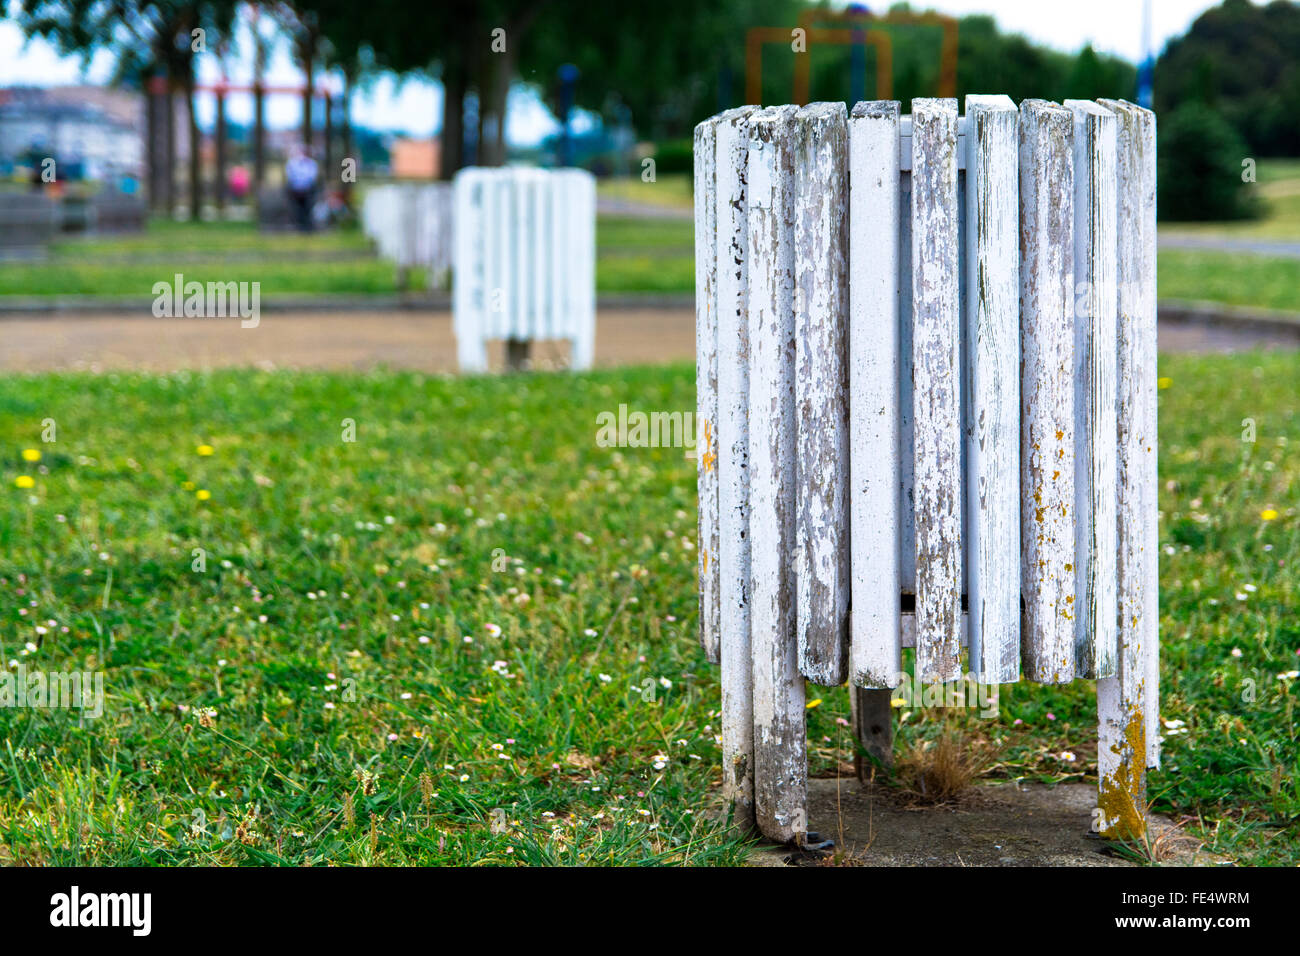 Close-Up Of Wooden Rubbish Bin In Park - Stock Image